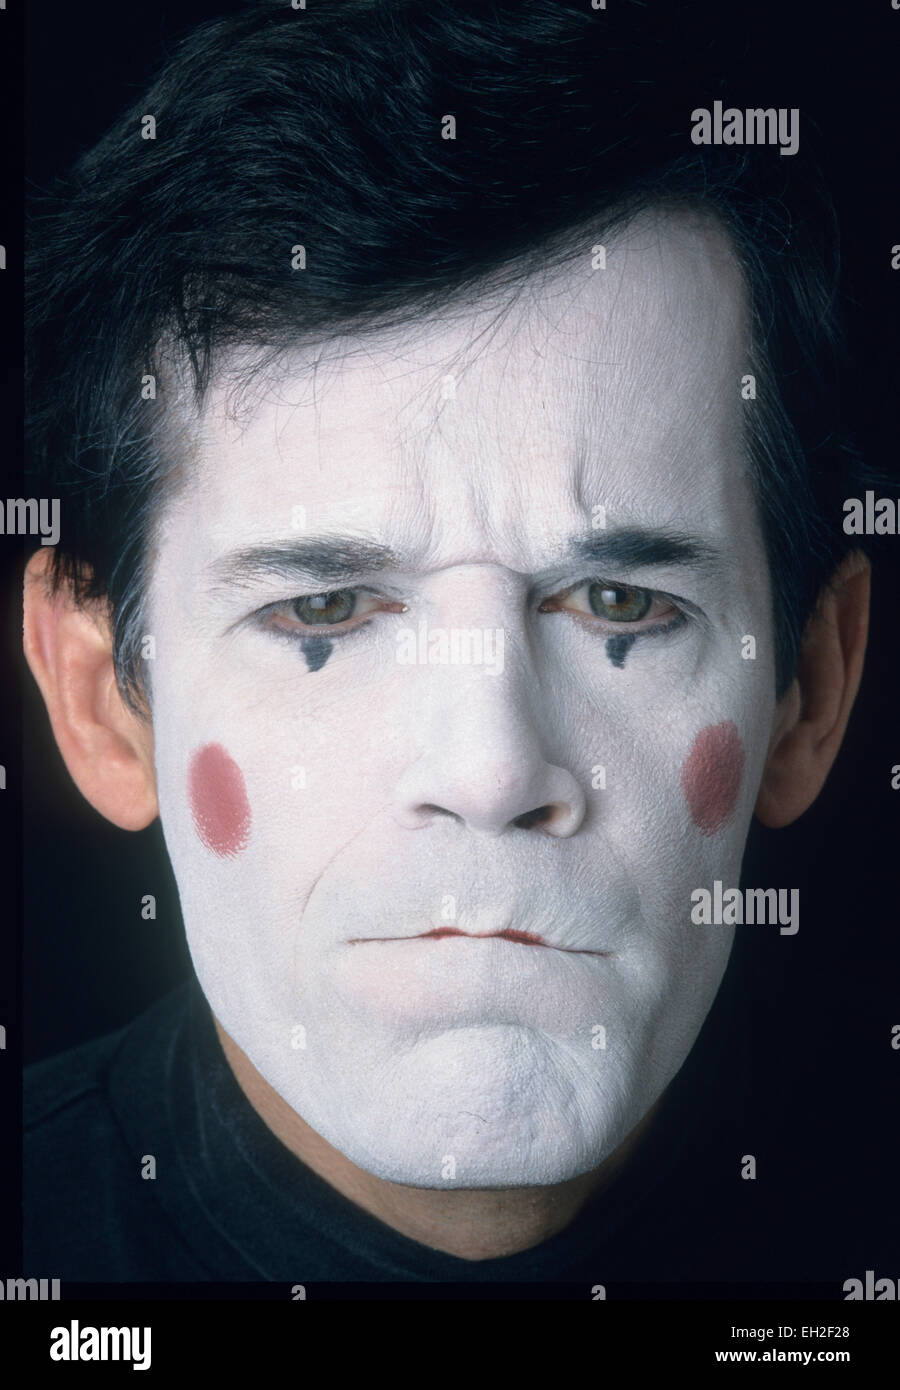 Mime, male, in white face, displaying anger, resentment - Stock Image